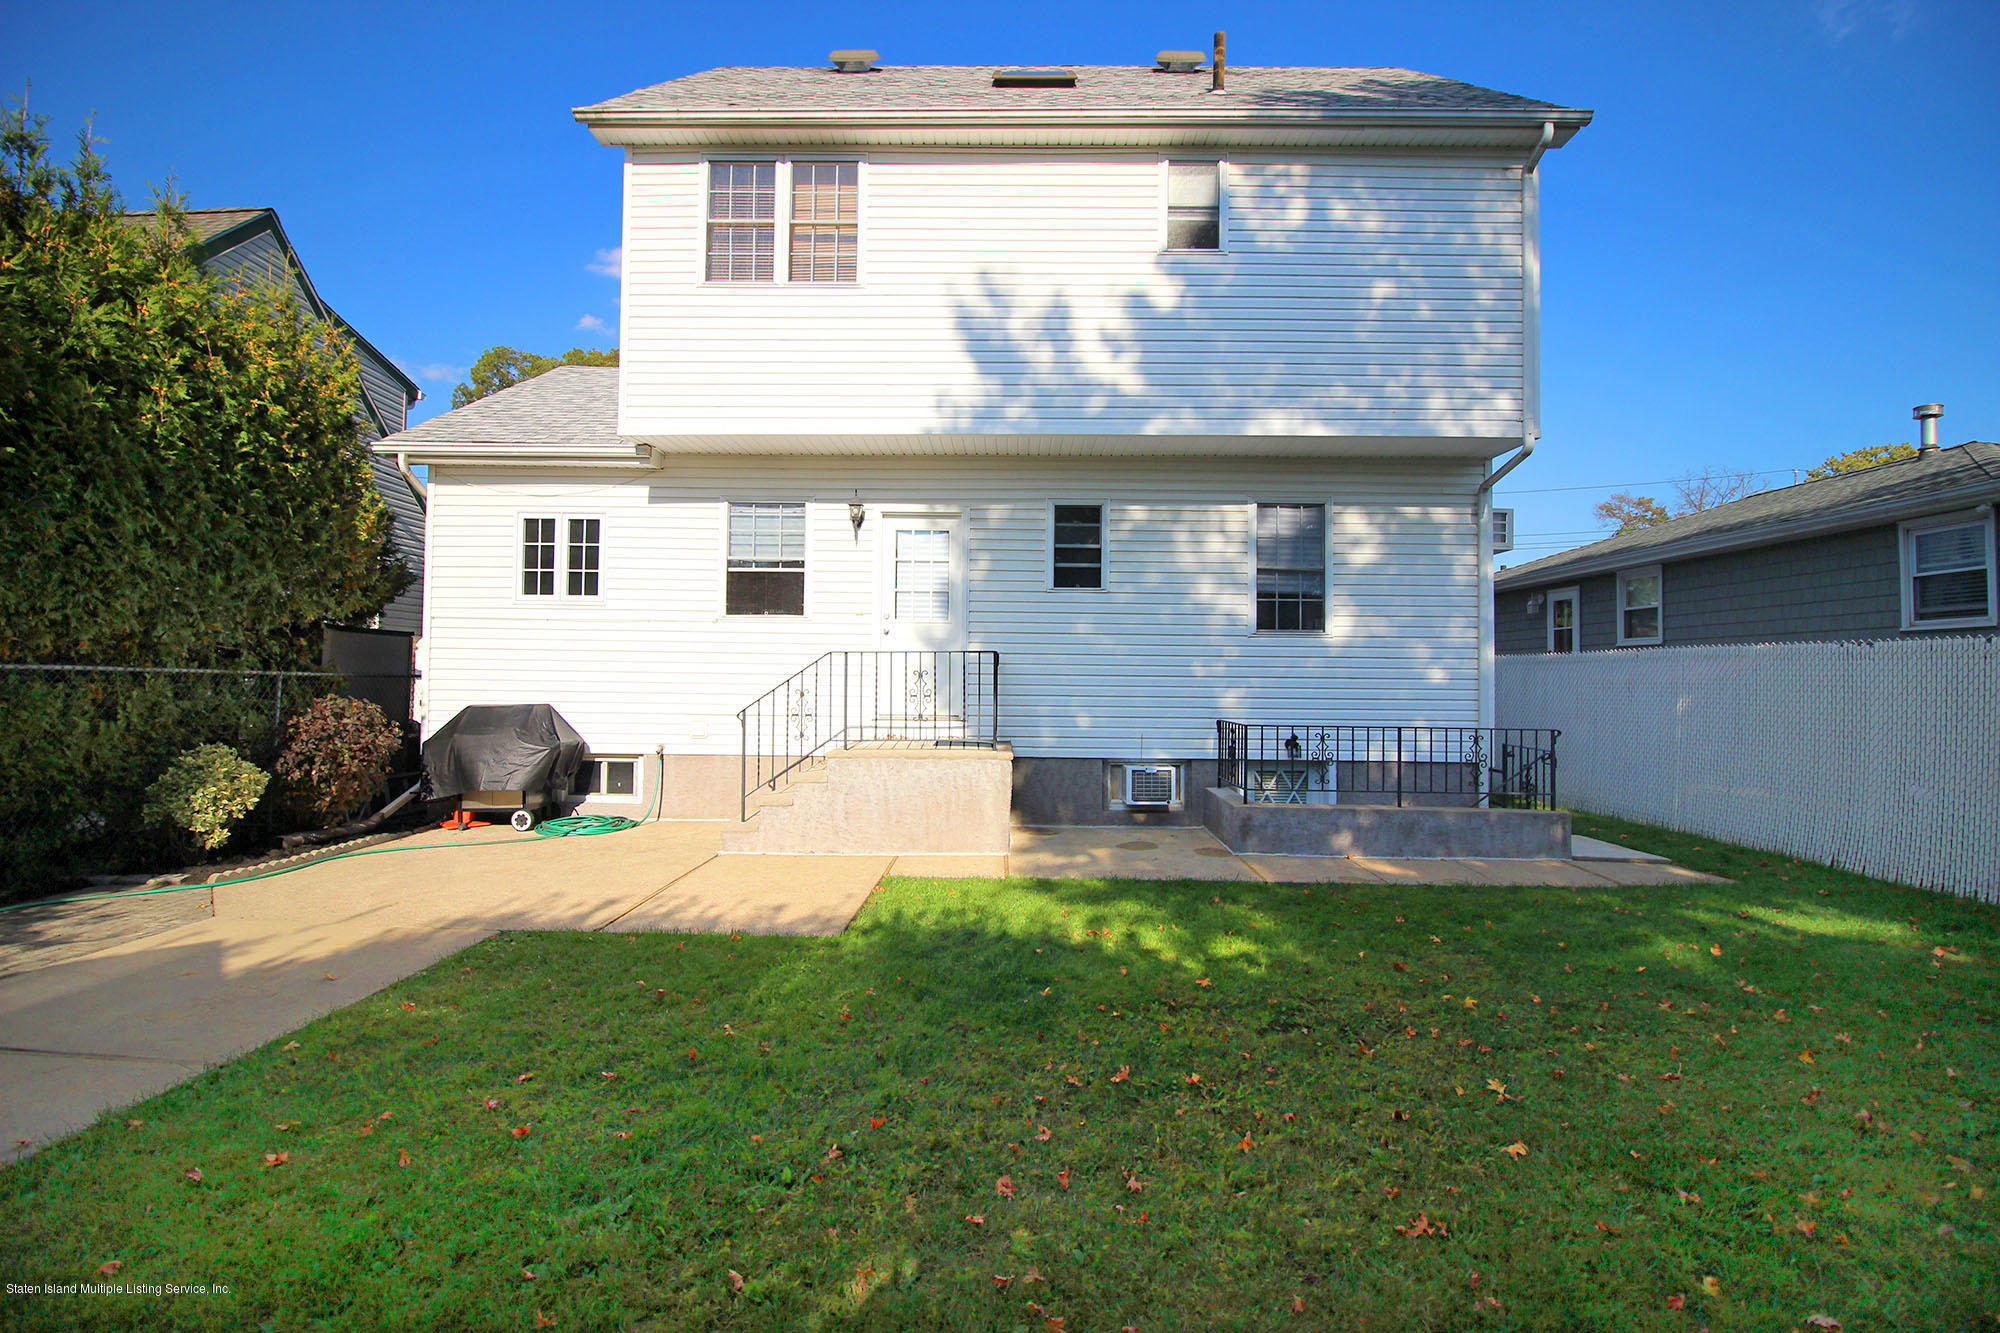 Single Family - Detached 214 Armstrong Avenue  Staten Island, NY 10308, MLS-1141604-38